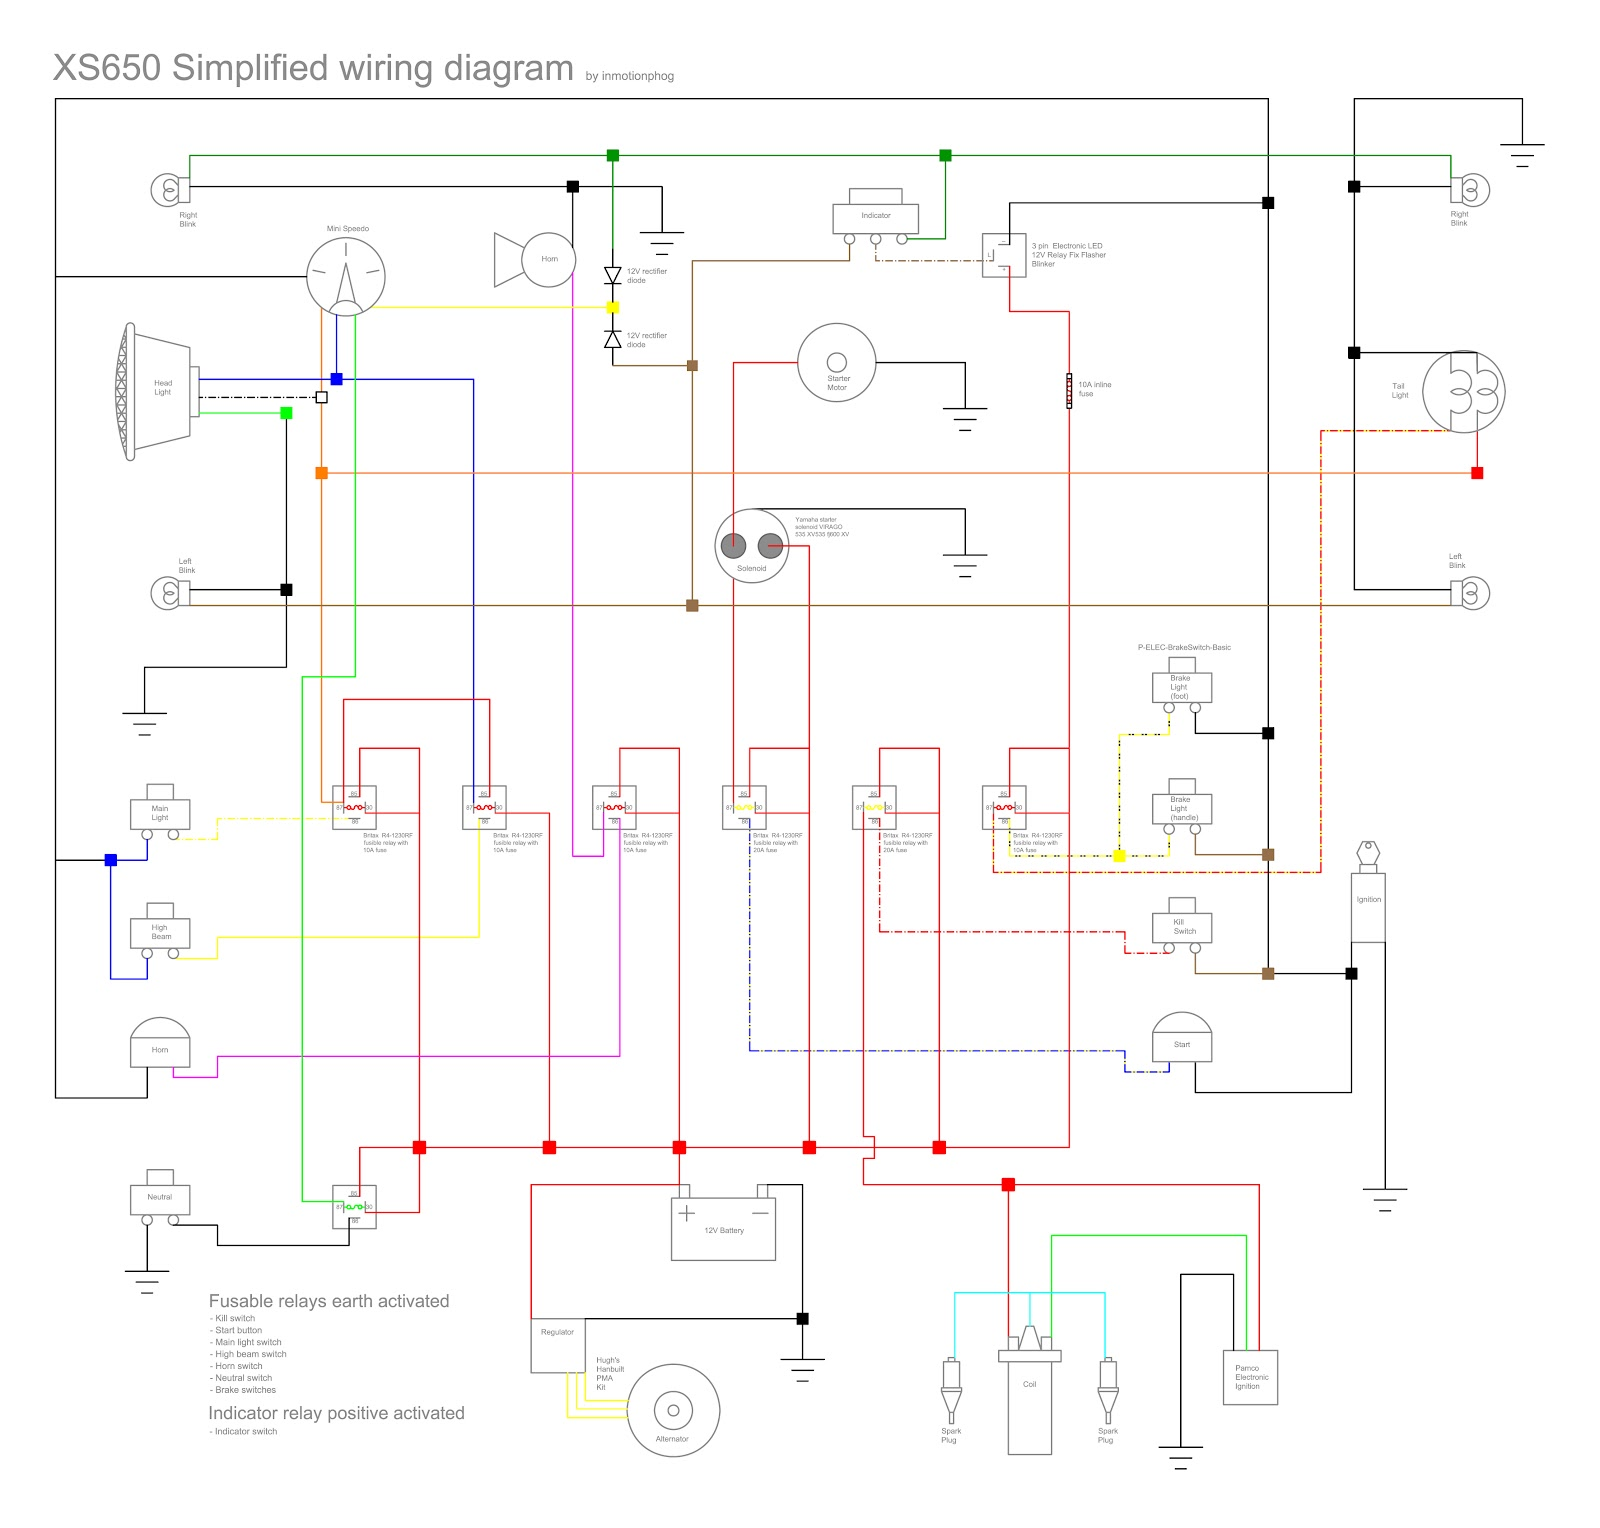 xs650 simplified wiring harness 31 wiring diagram images xj550 simplified wiring xs650 simple wiring harness [ 1600 x 1528 Pixel ]